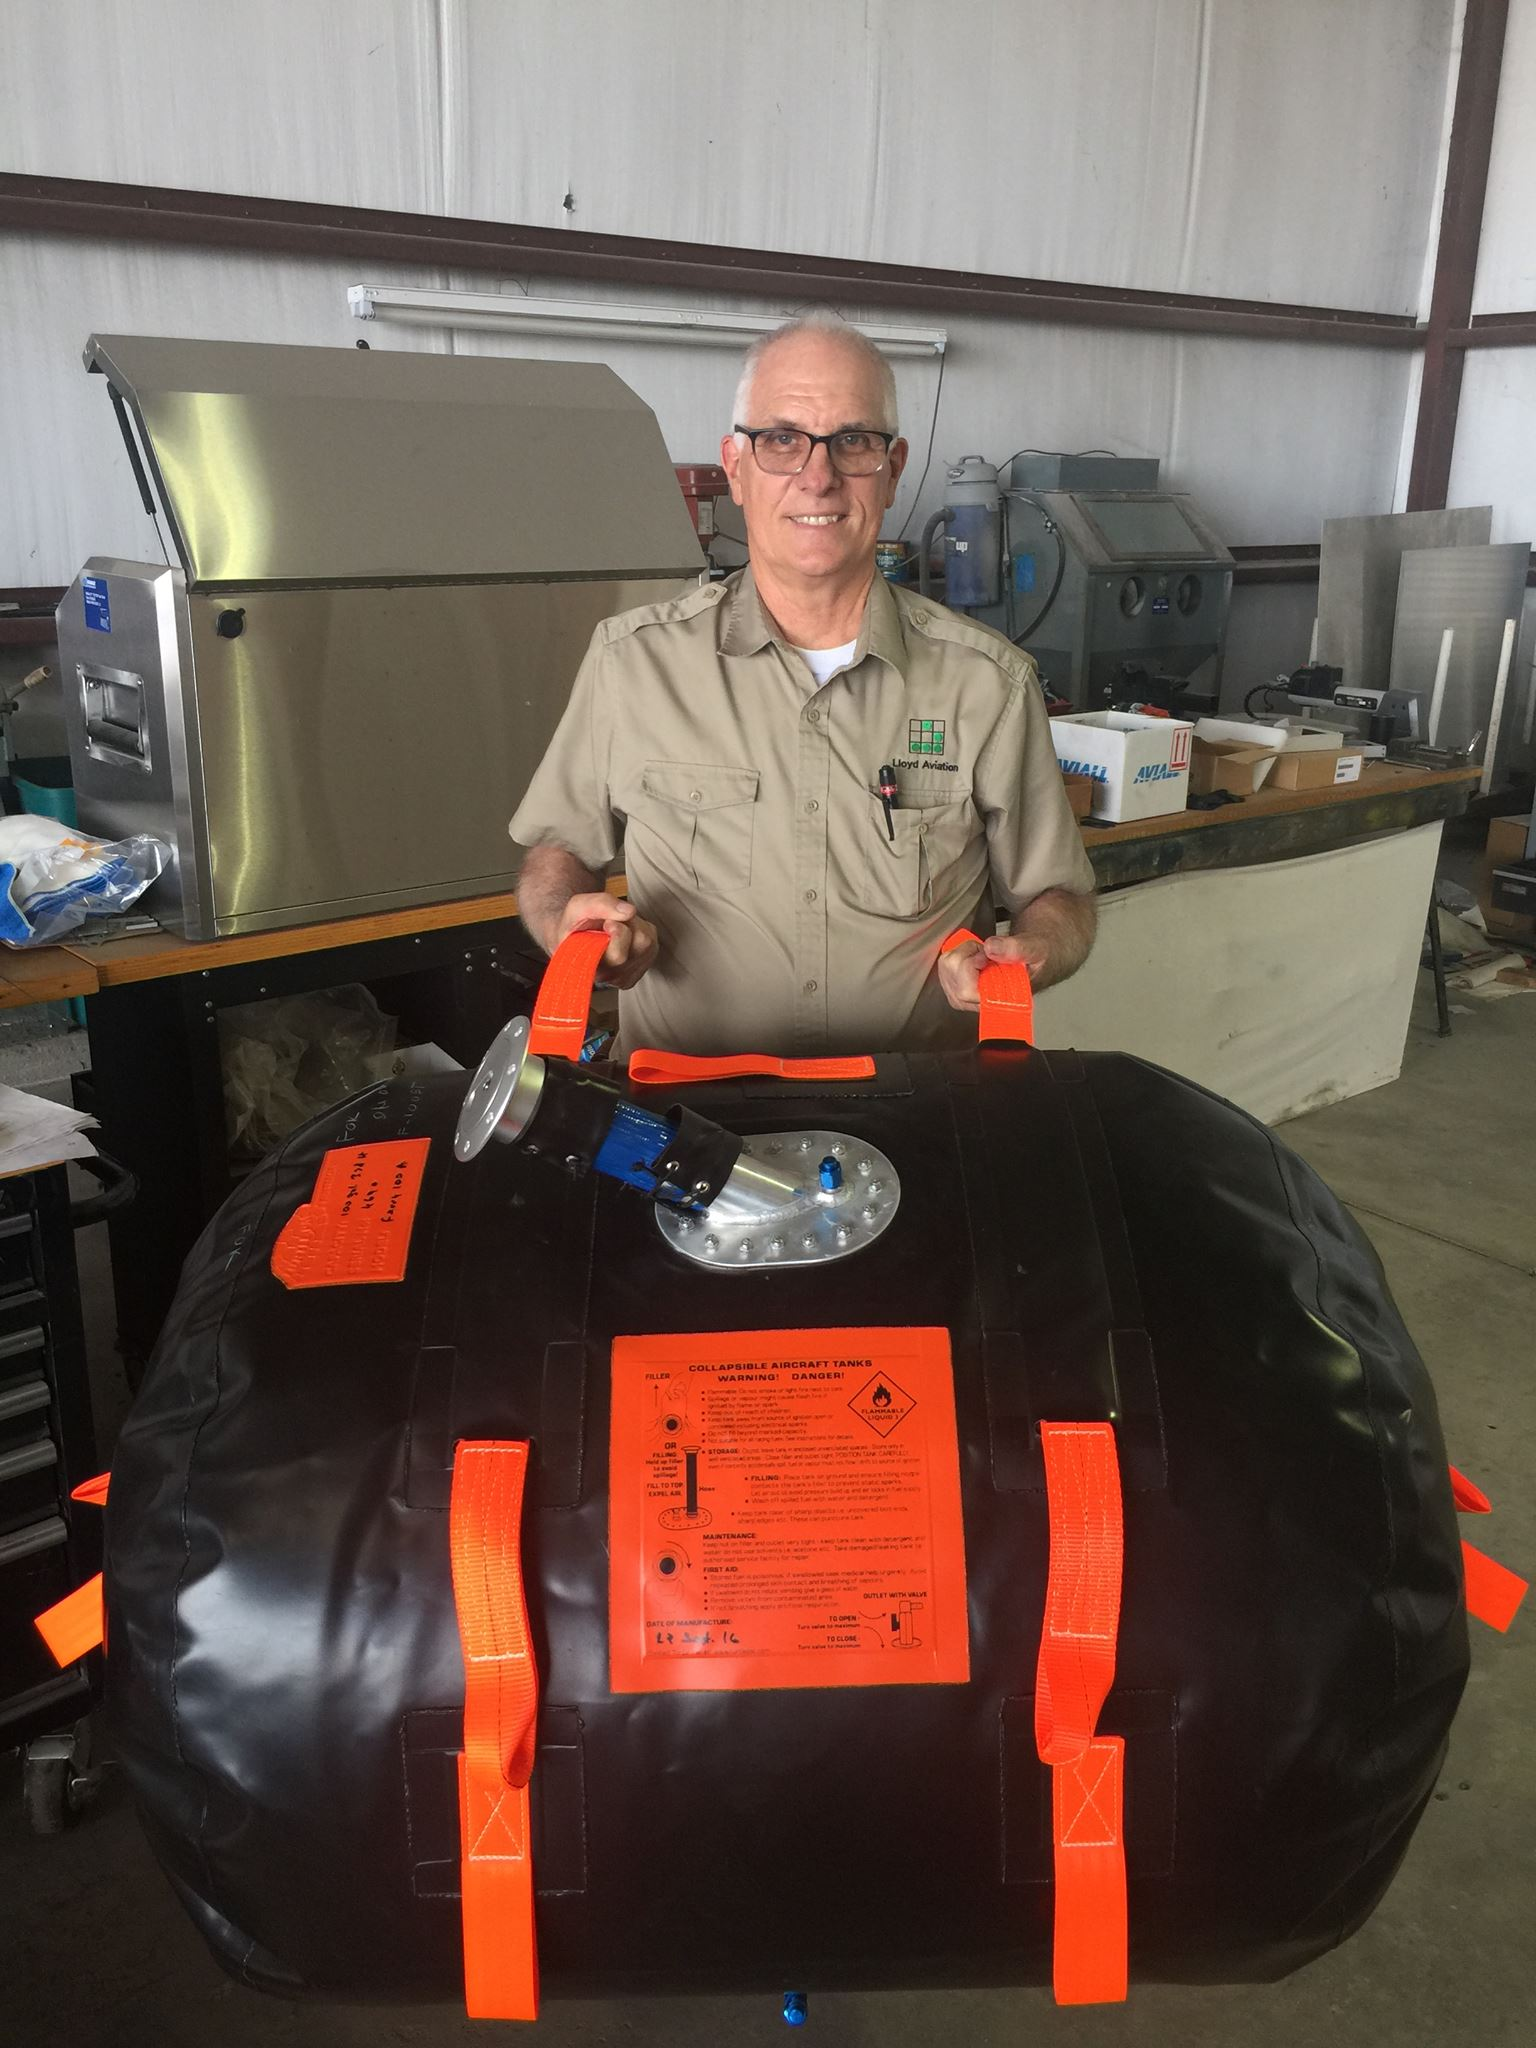 Brian Lloyd holds the extra 100 gallon fuel tank during installation in the Spirit airplane